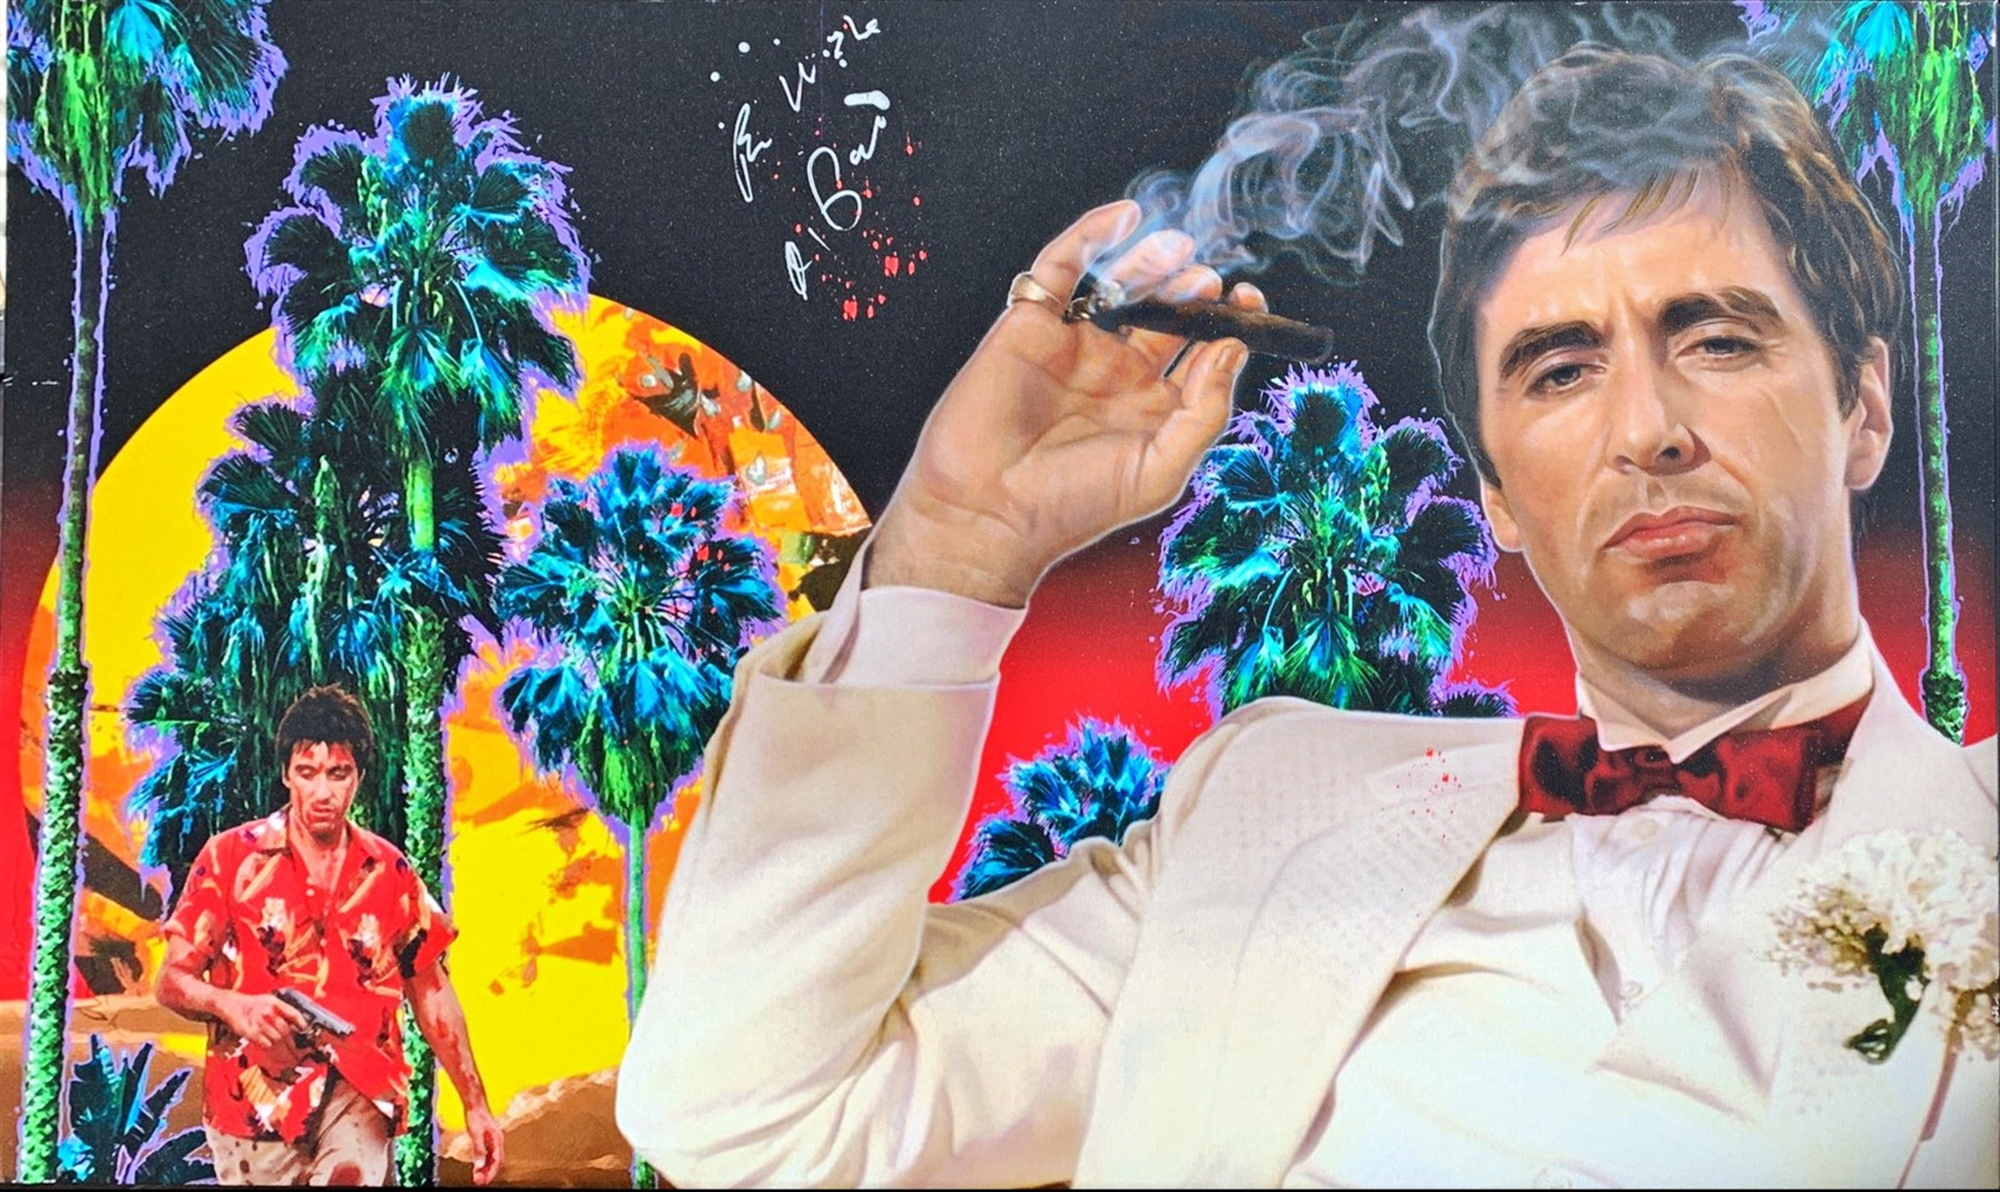 Scarface by Adam Scott Rote